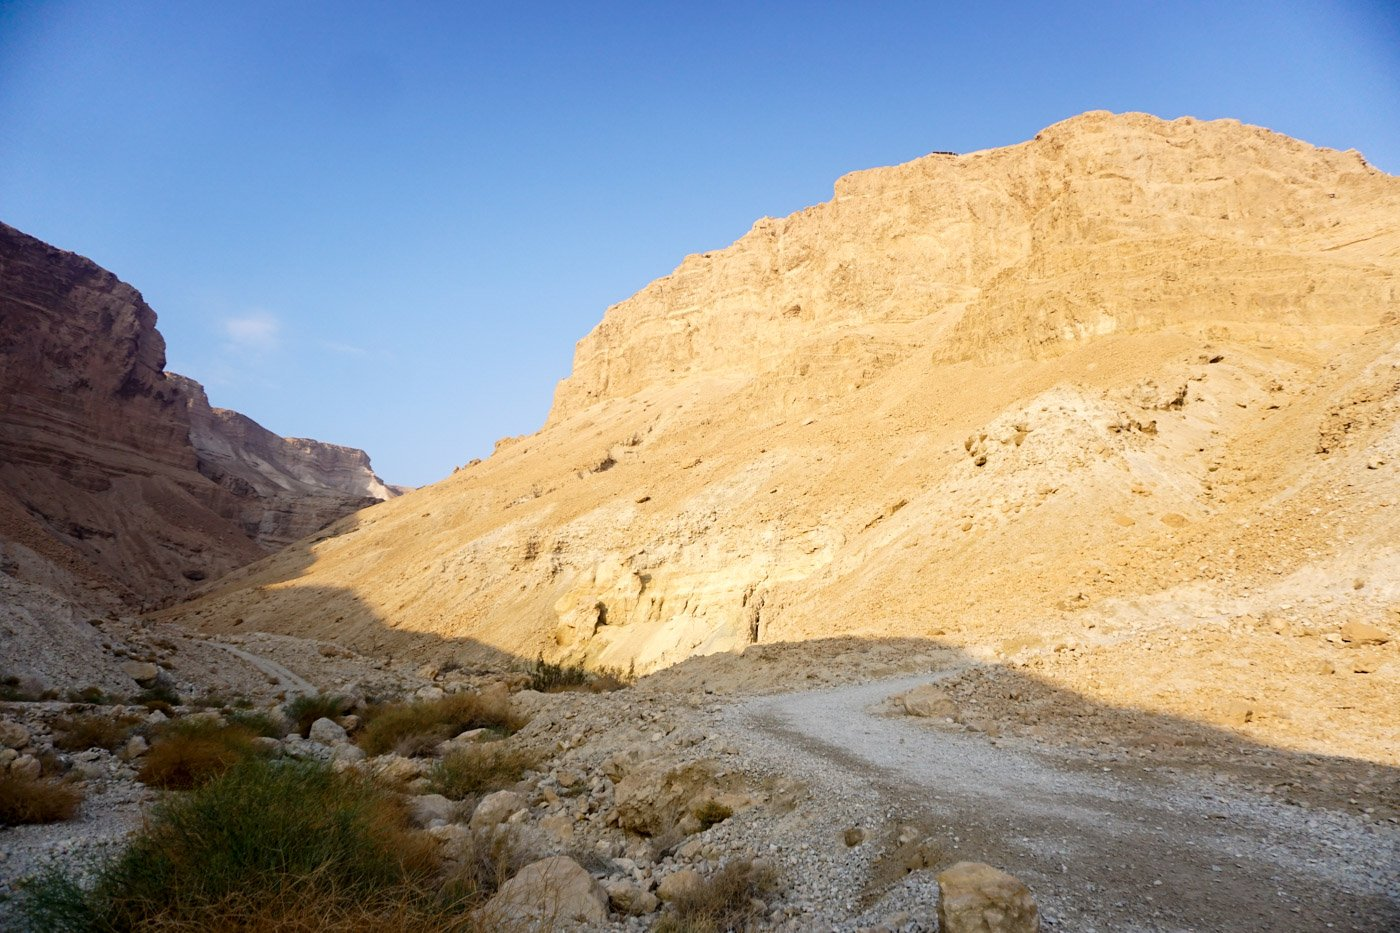 If you consider yourself a non-hiker and you're thinking about hiking Masada in Israel, here's what you'll need to know